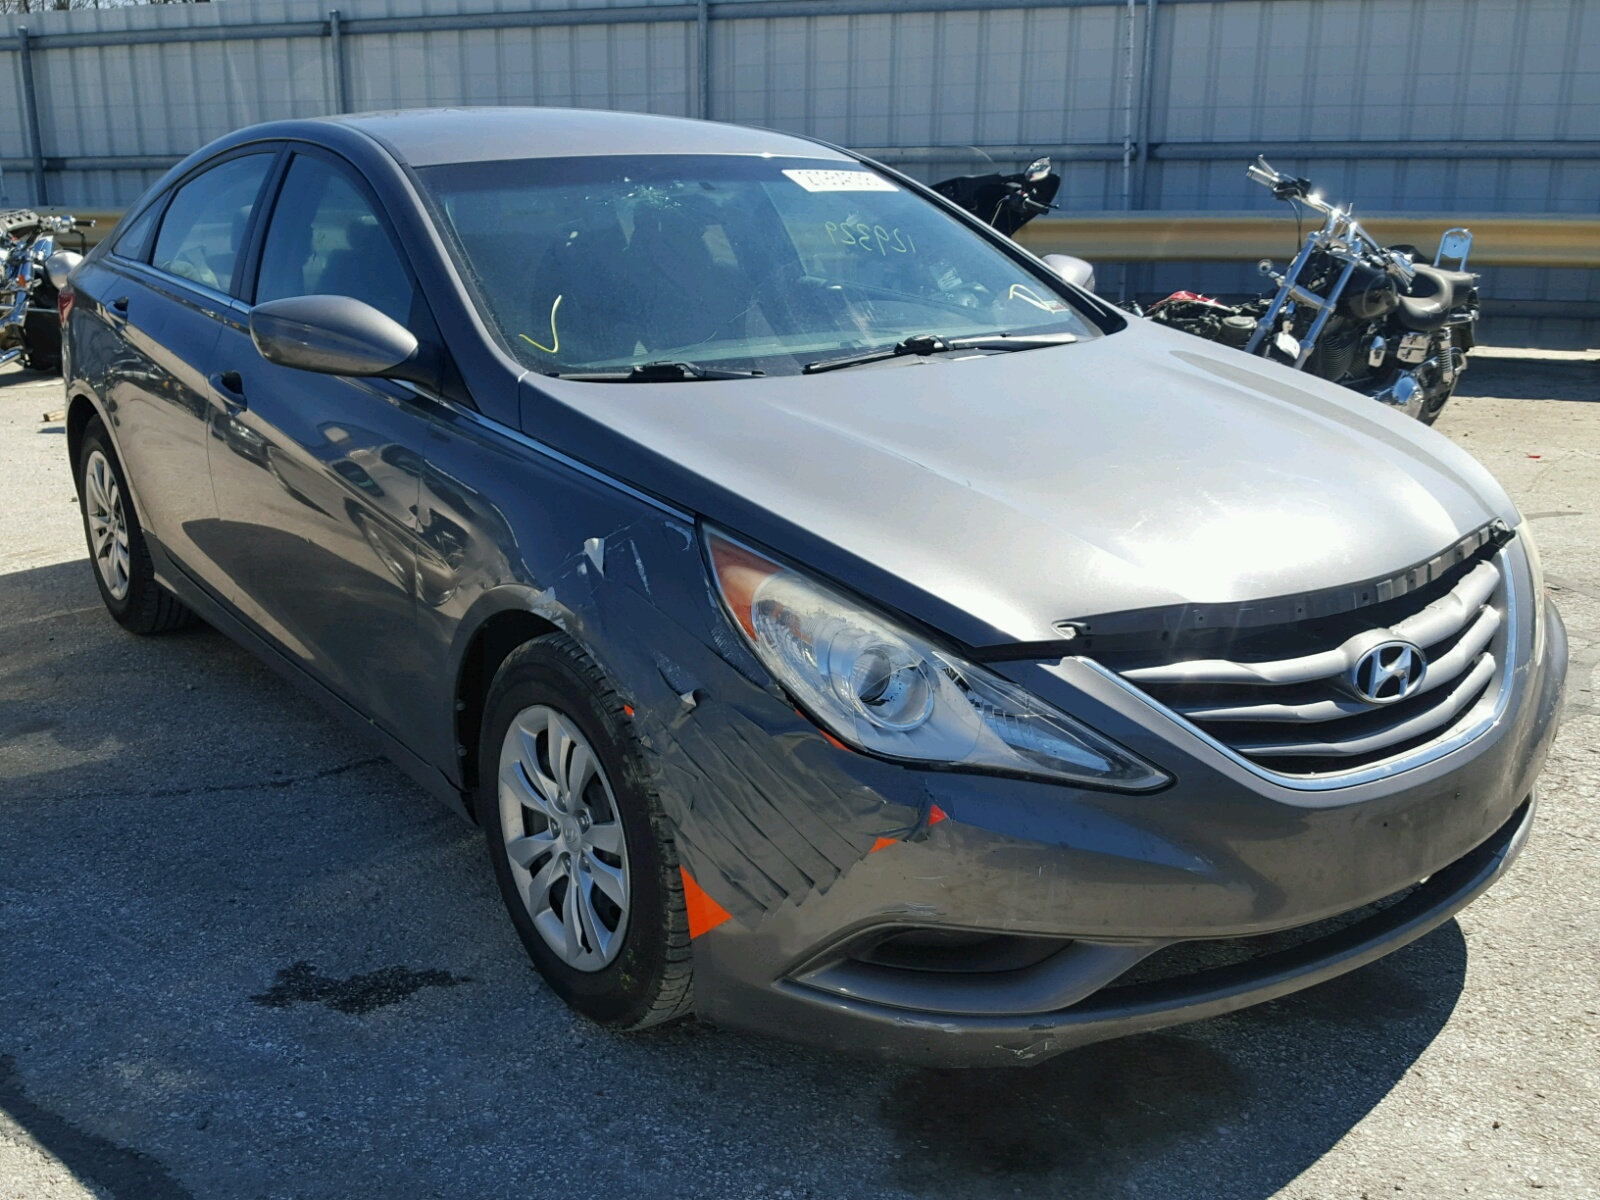 auto copart black hyundai certificate online lot auctions left title of sc en gls in sale view on greer accent carfinder